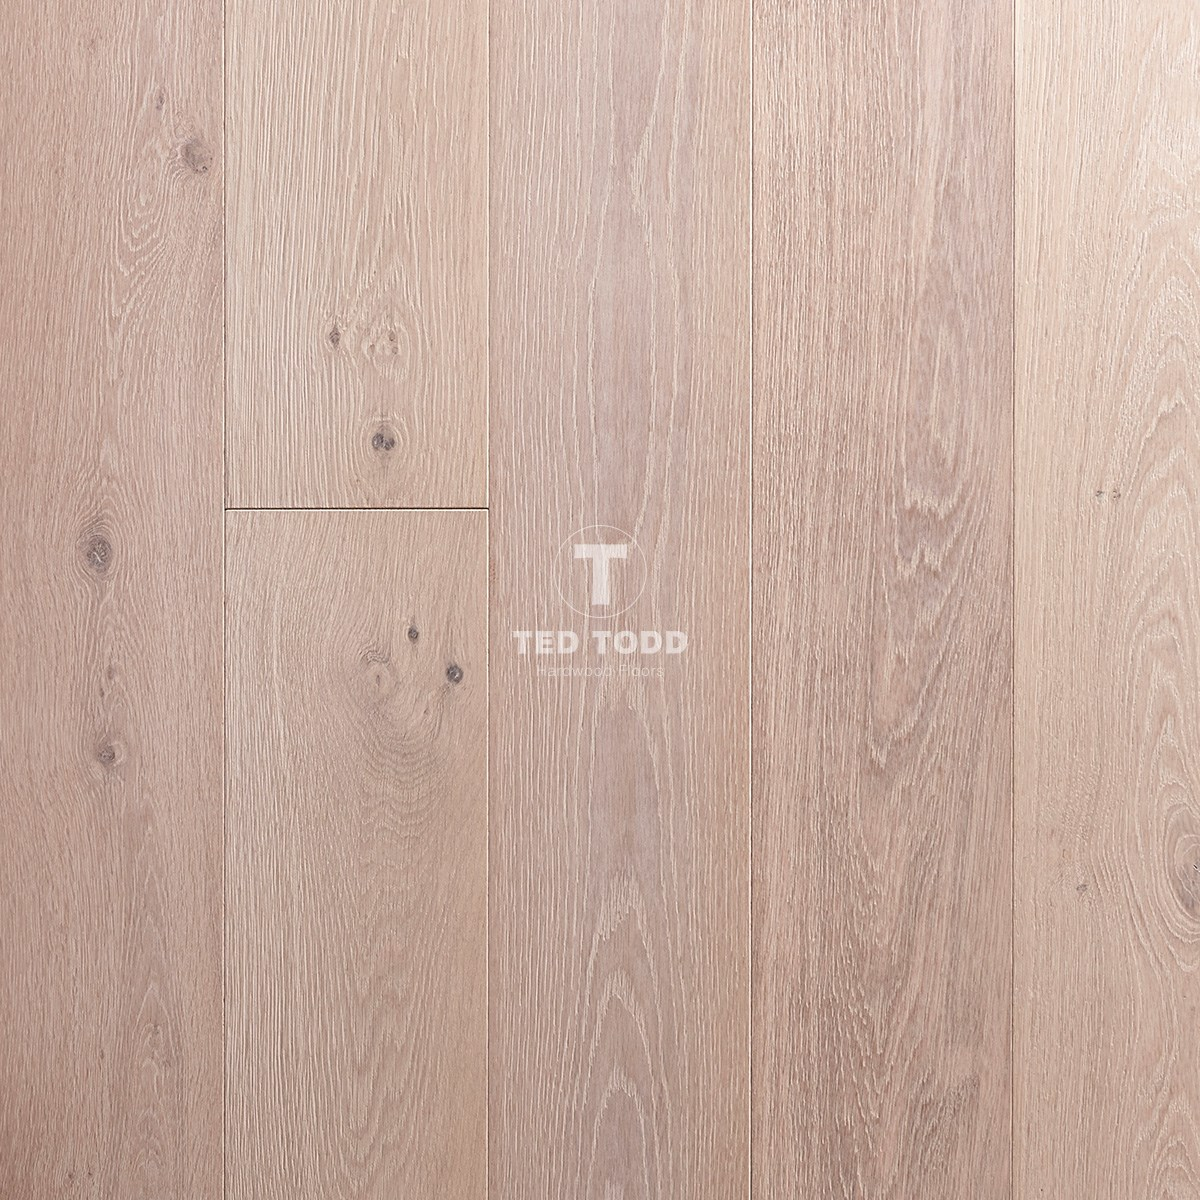 Ted Todd Cashmere Planks